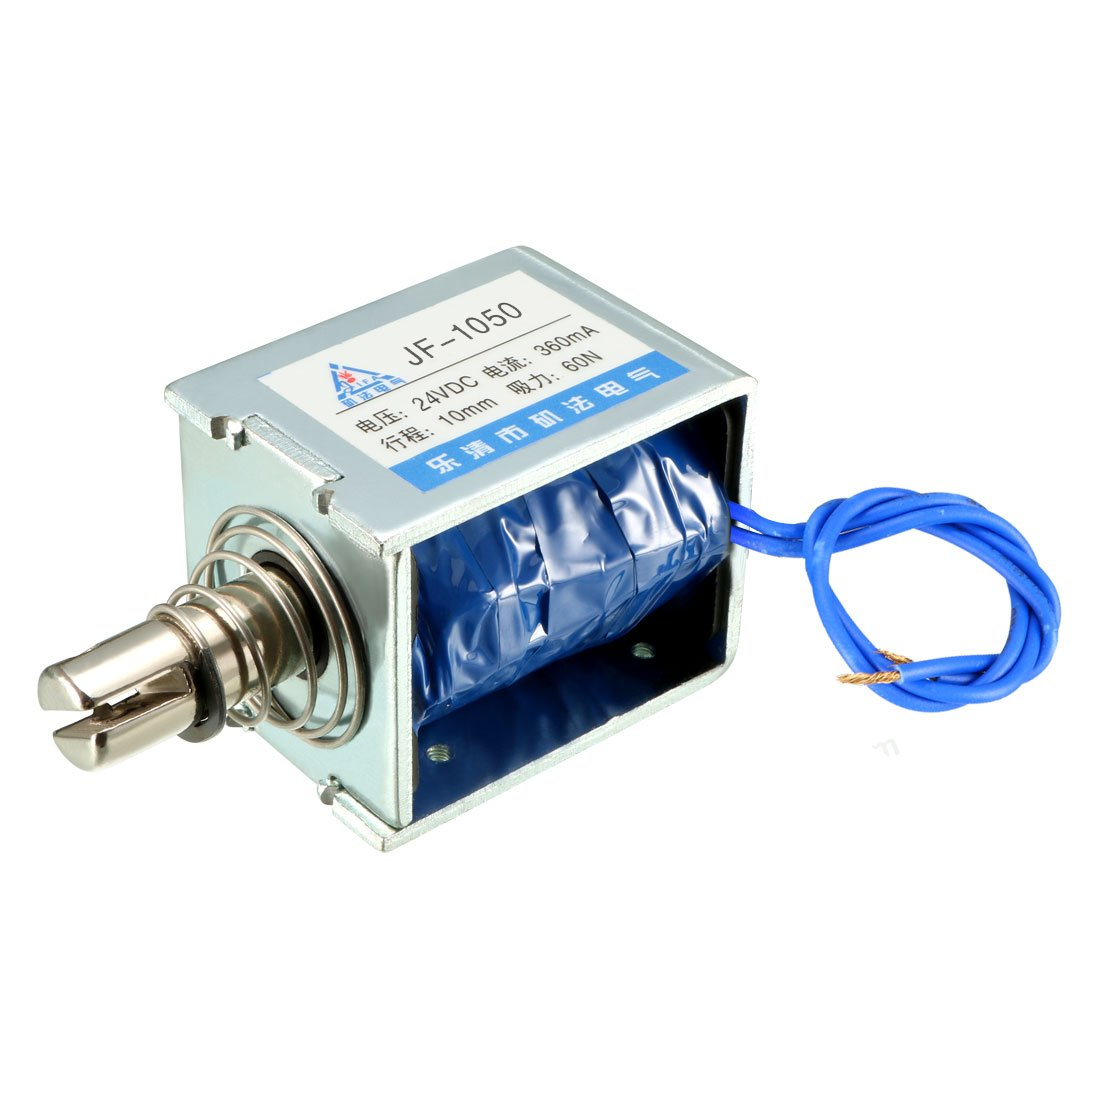 uxcell JF-1050 DC 24V 360mA 60N 10mm Push Type Open Frame Linear Motion Solenoid Electromagnet